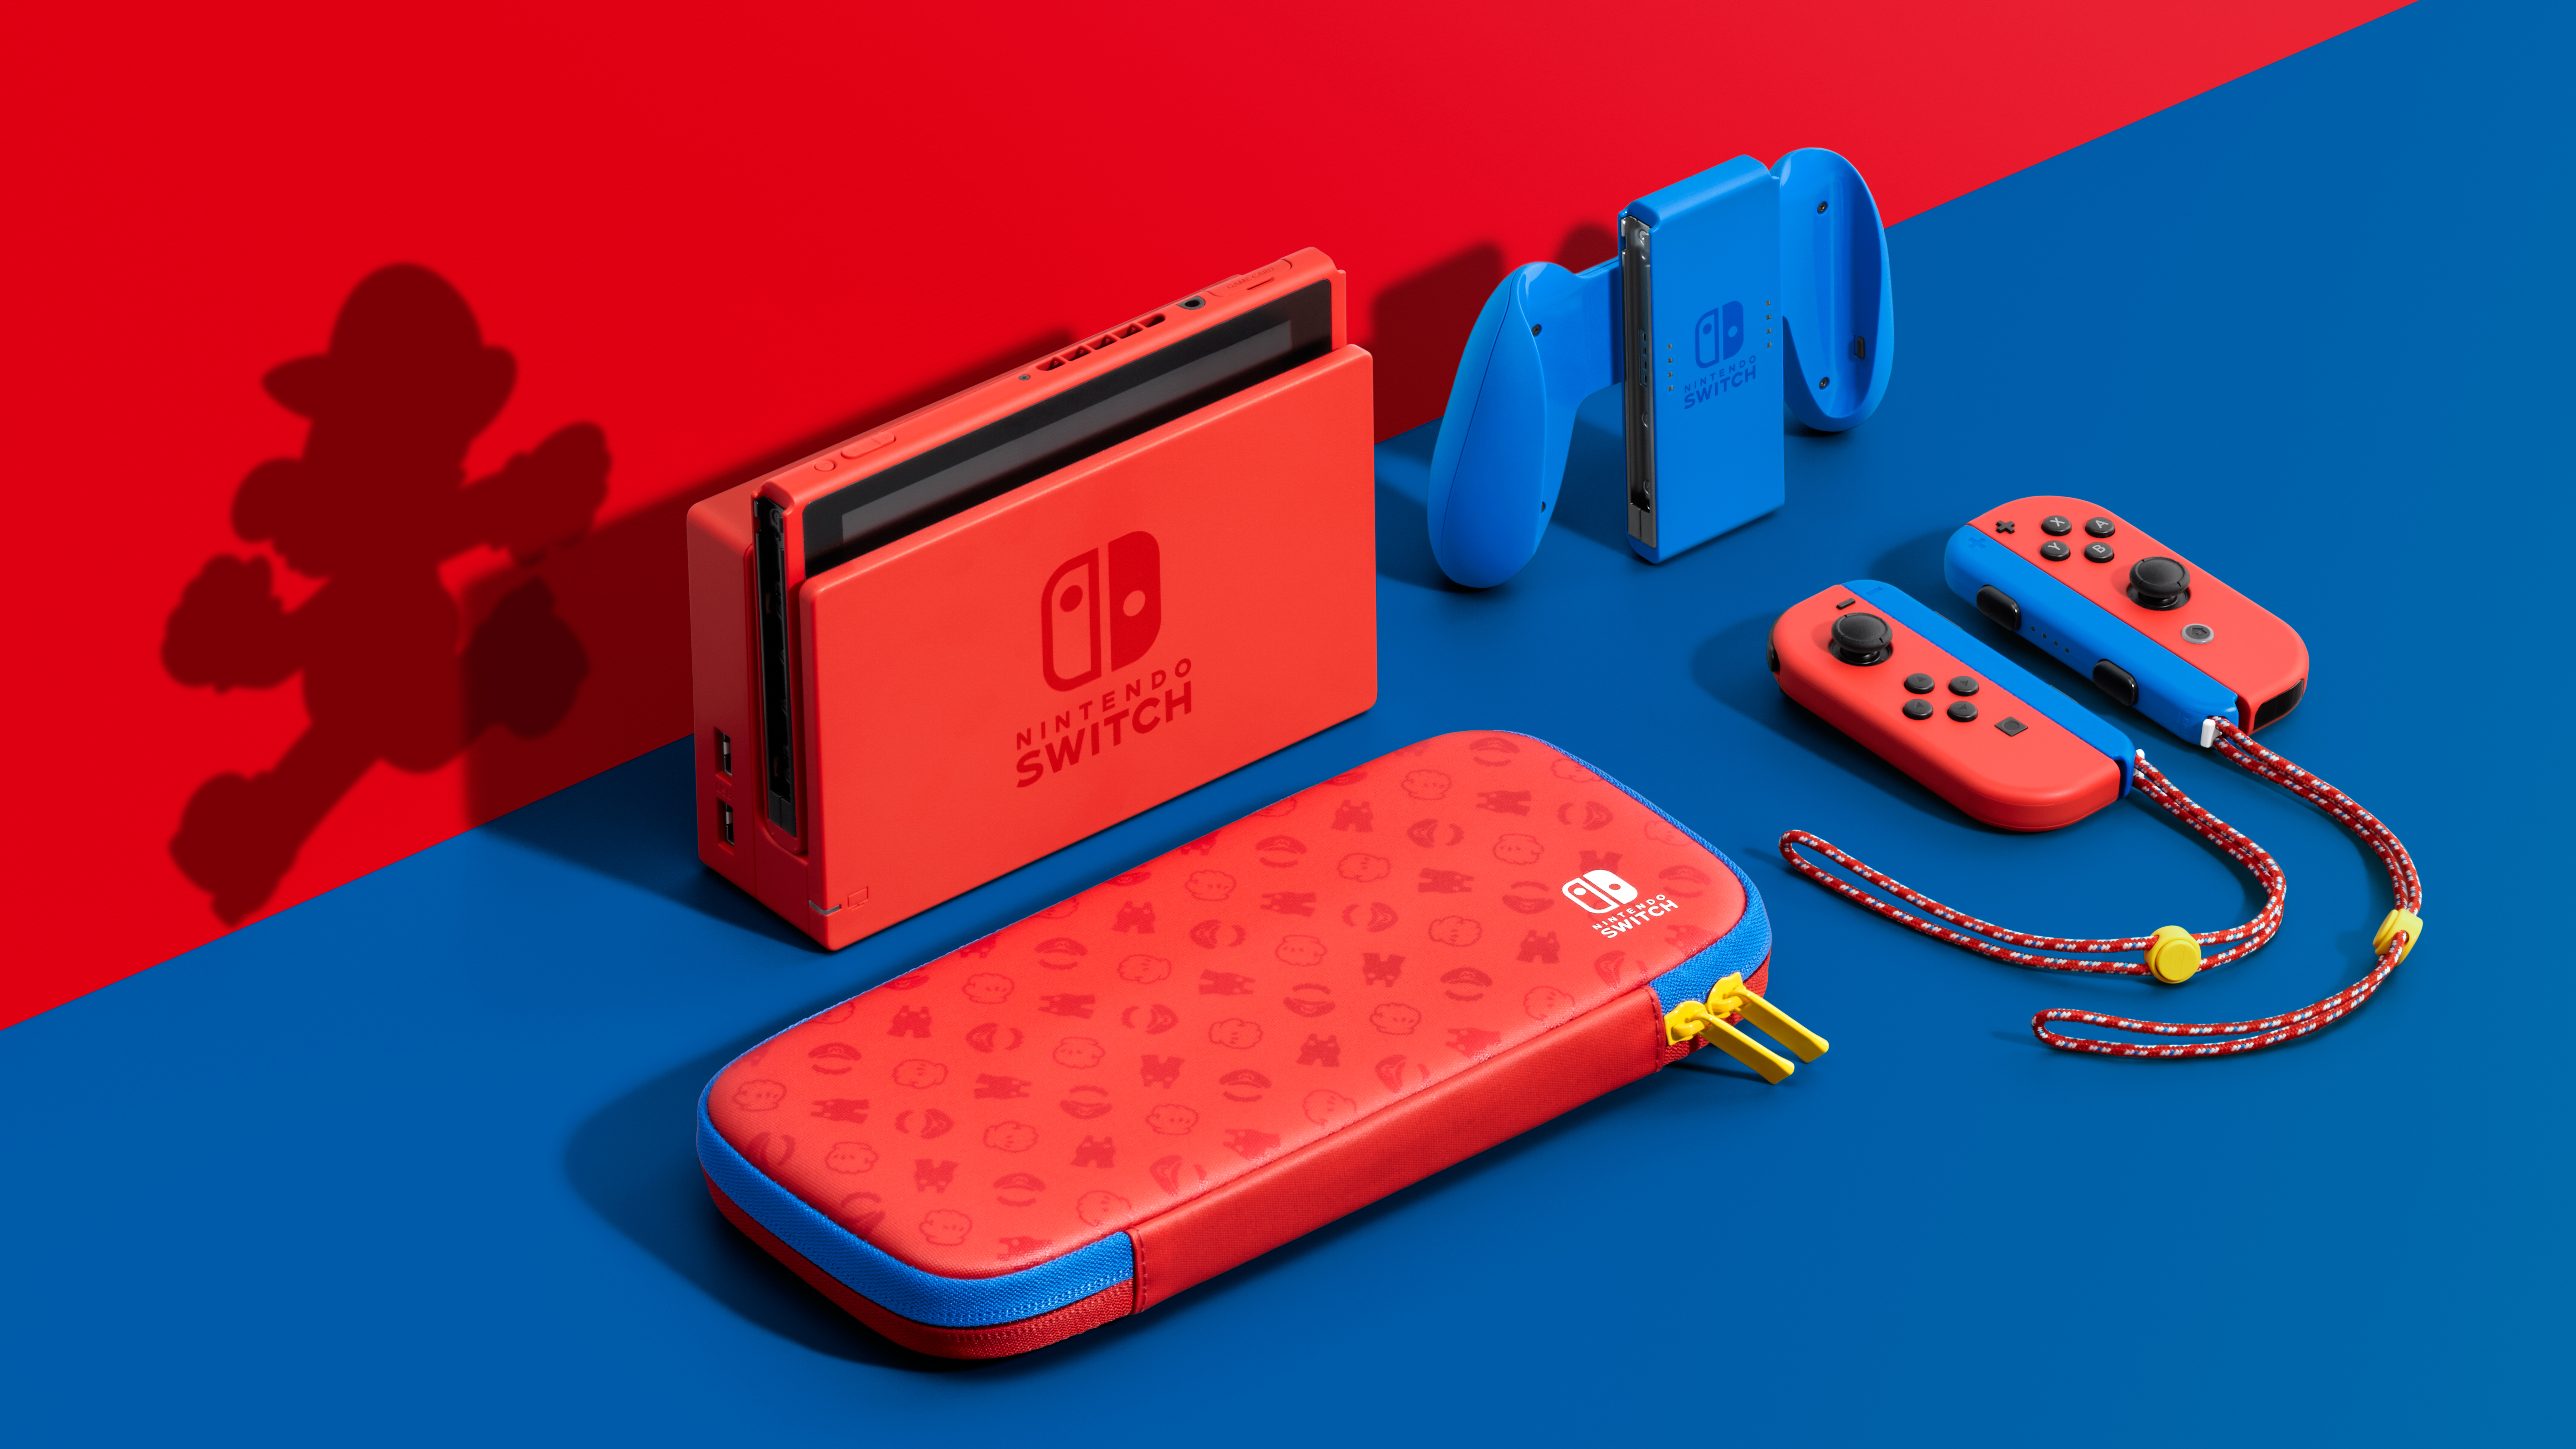 The Mario Red &Amp; Blue Edition Switch Console Is The First Time The Switch System Itself Has Been Available In A Different Colour.